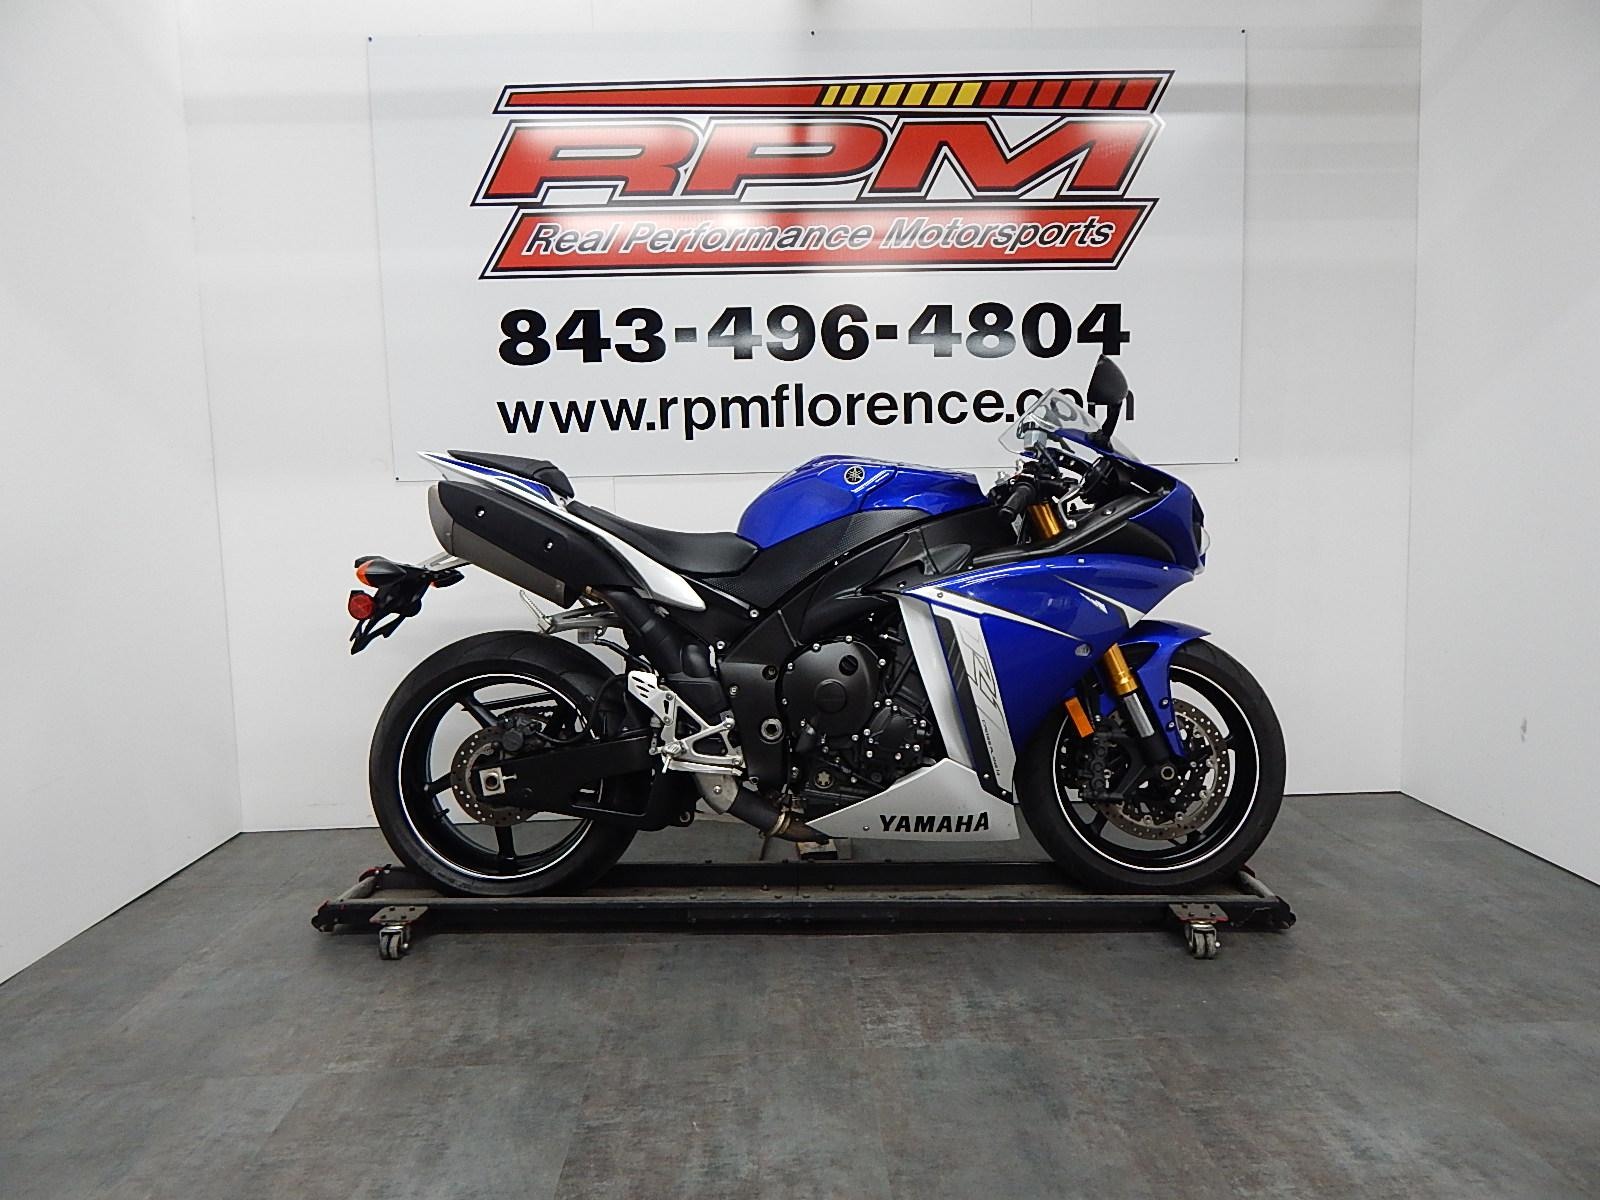 2011 Yamaha YZF-R1 - Team Yamaha Blue/White for sale in Florence, SC